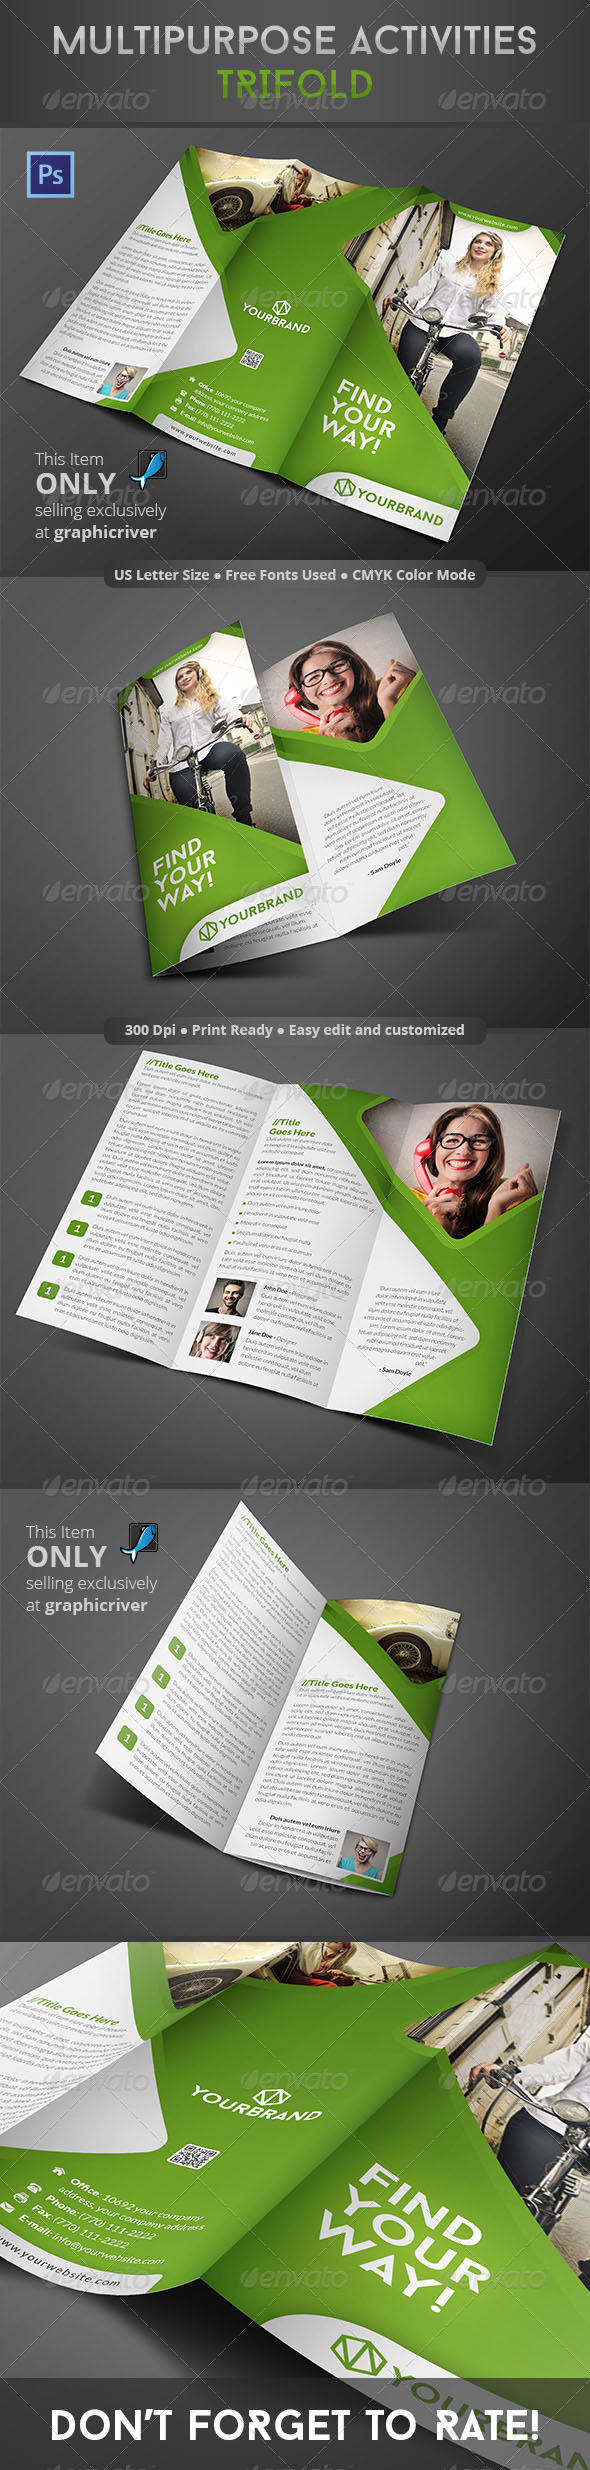 GraphicRiver Multipurpose Activities Trifold 8680986